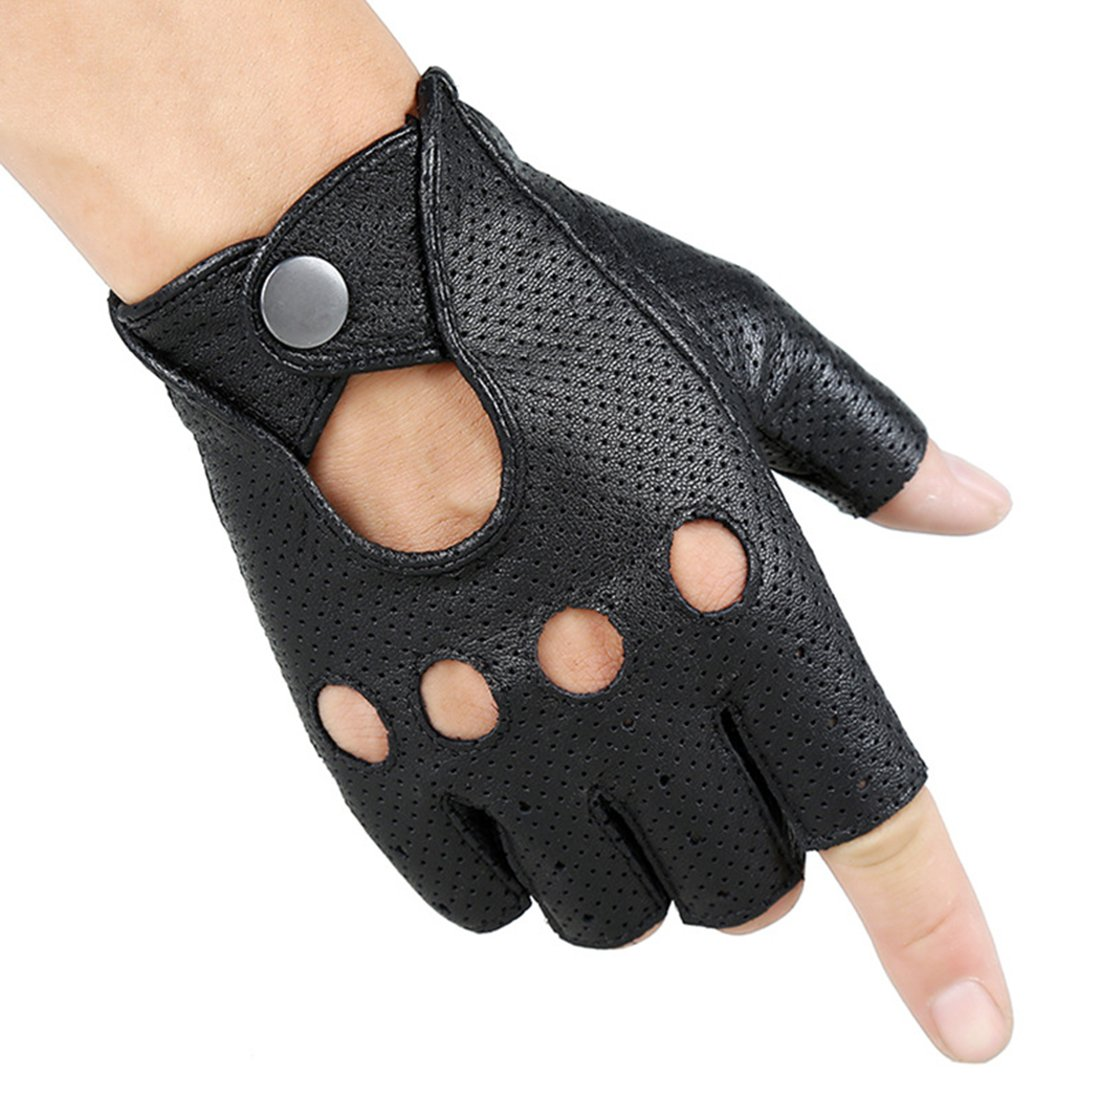 Yingniao Cycling Summer Fingerless Leather Driving Half Finger Fitness Motorcycle Protection Leather Gloves Men M